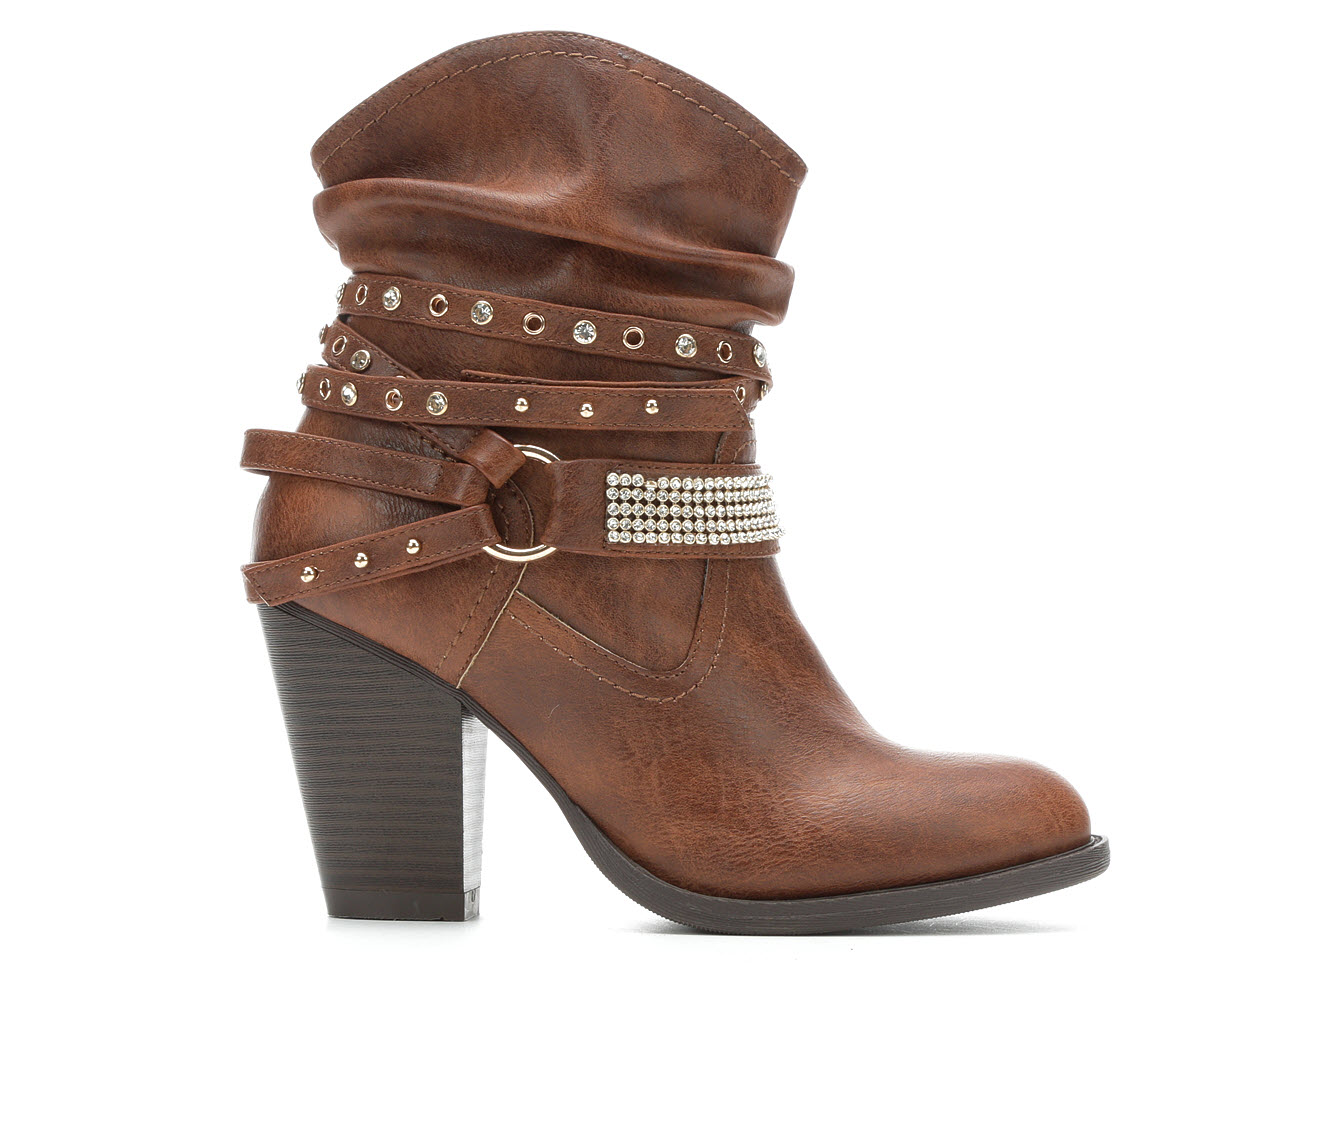 Daisy Fuentes Winston Women's Boots (Brown - Faux Leather)